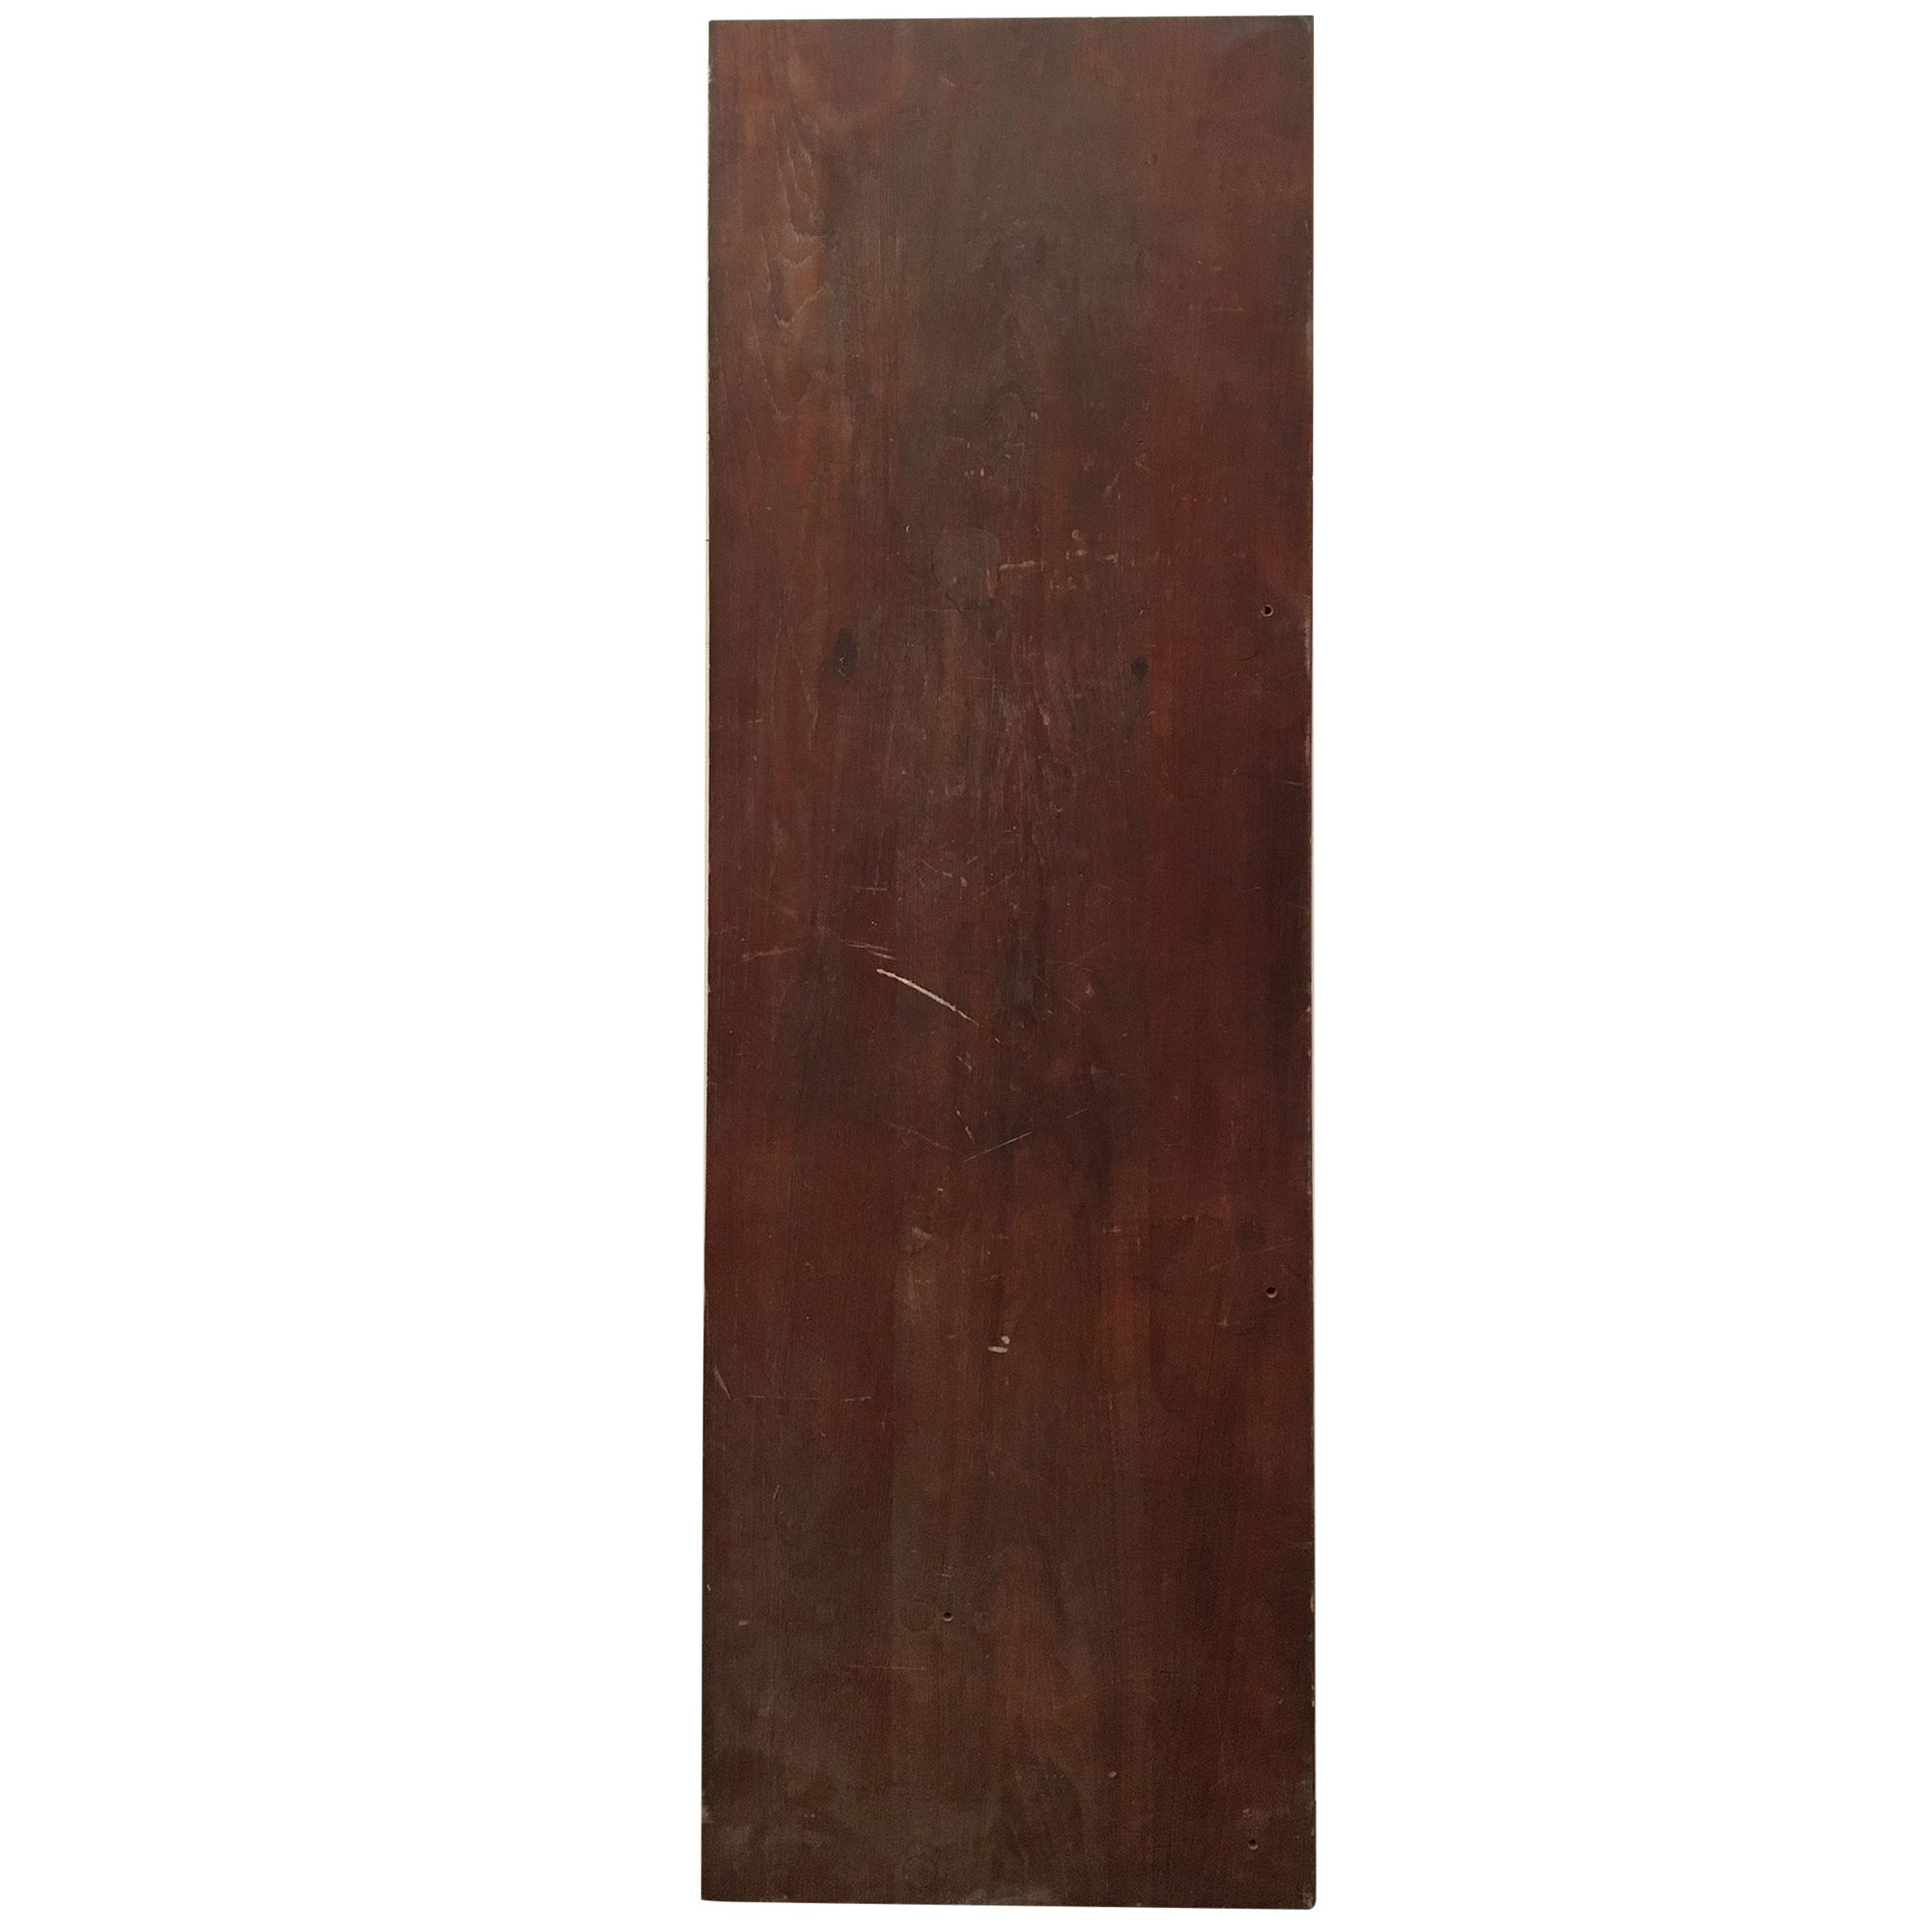 Reclaimed Teak/Iroko Worktop 169 X 50.5cm - architectural-forum